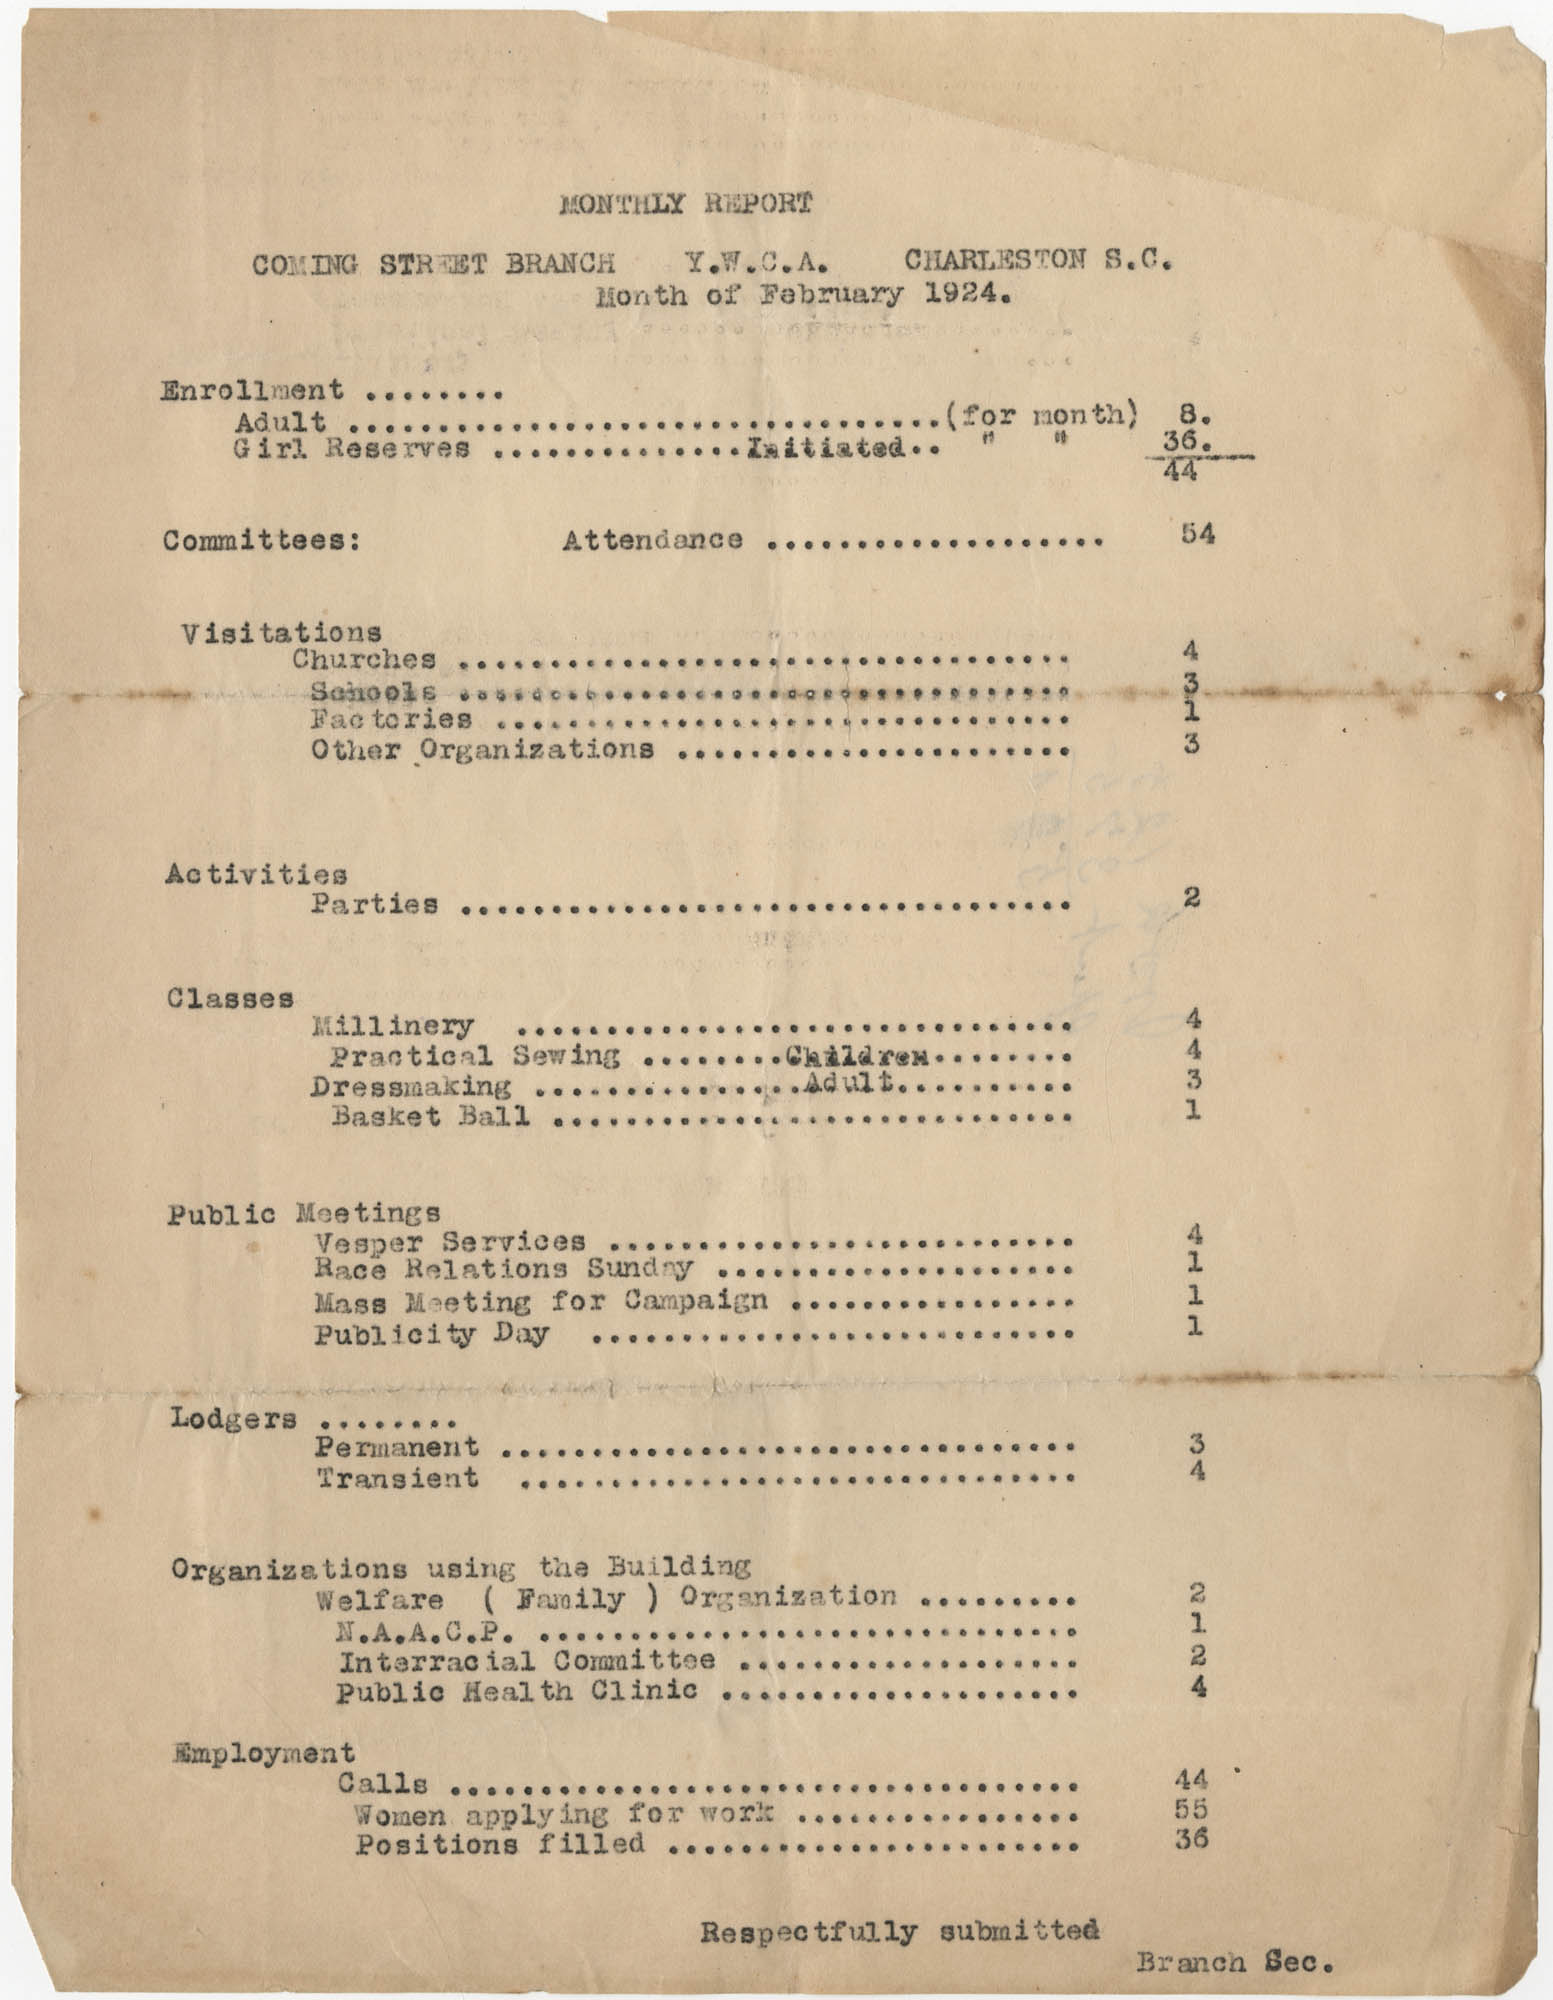 Monthly Report for the Coming Street Y.W.C.A., February 1924